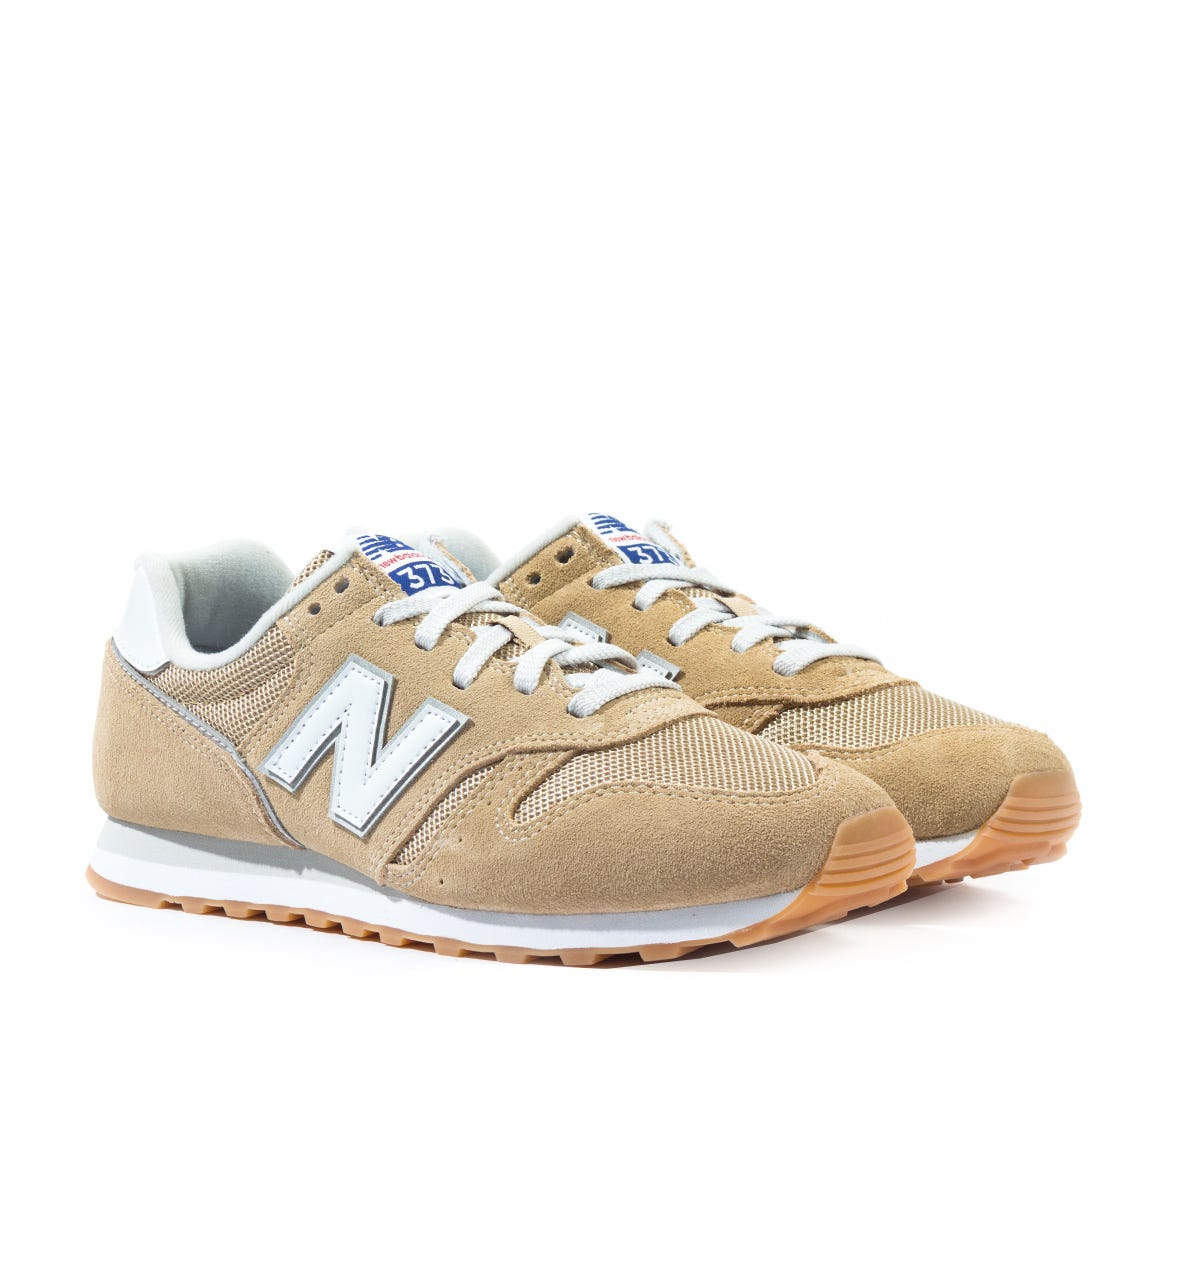 New Balance 373 Nude Suede Trainers